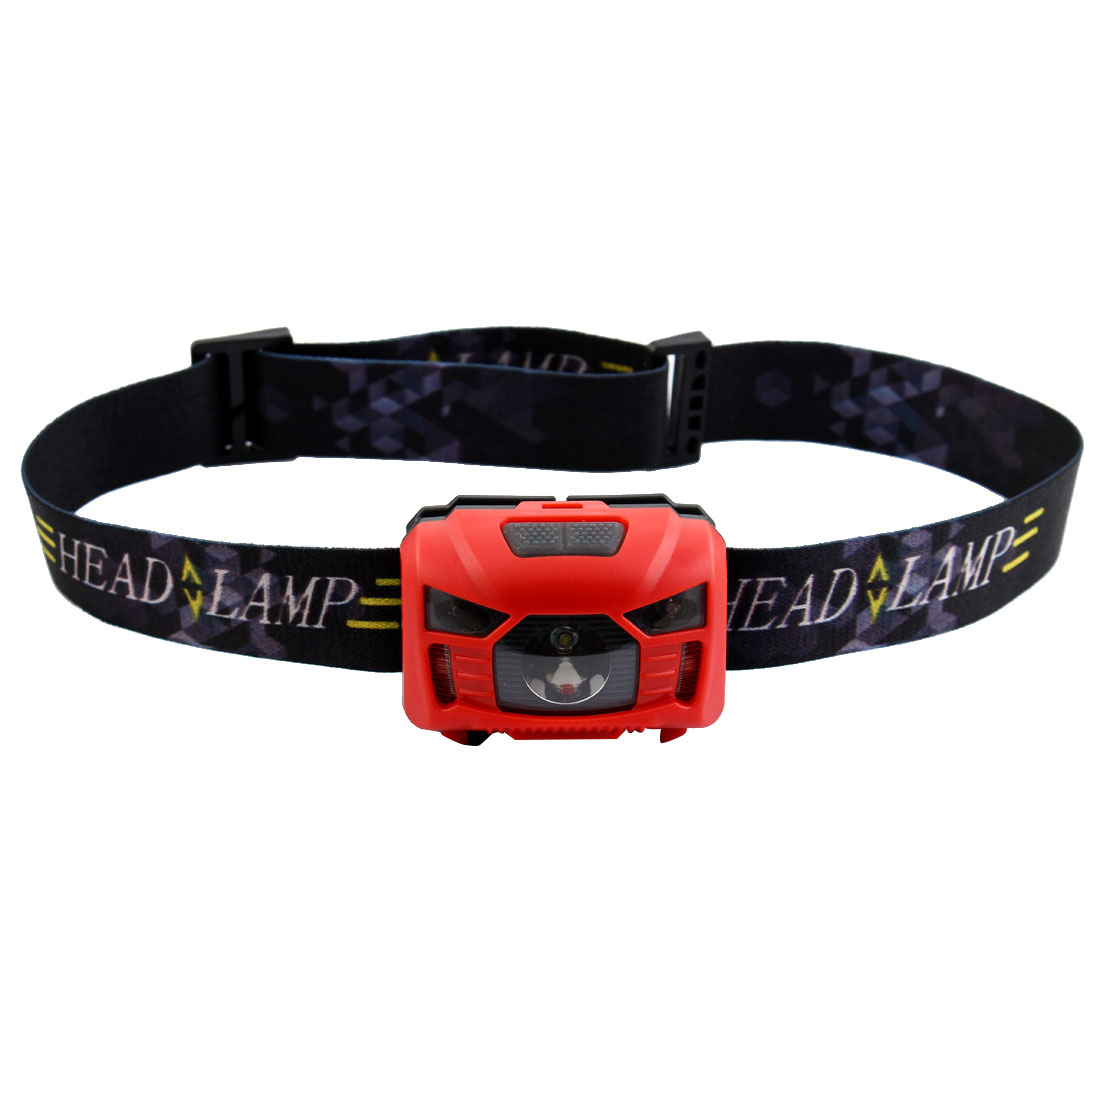 Outdoor Travel Hiking Camping LED Head Lamp Cycling Biking Headlamp Portable Headlight Red